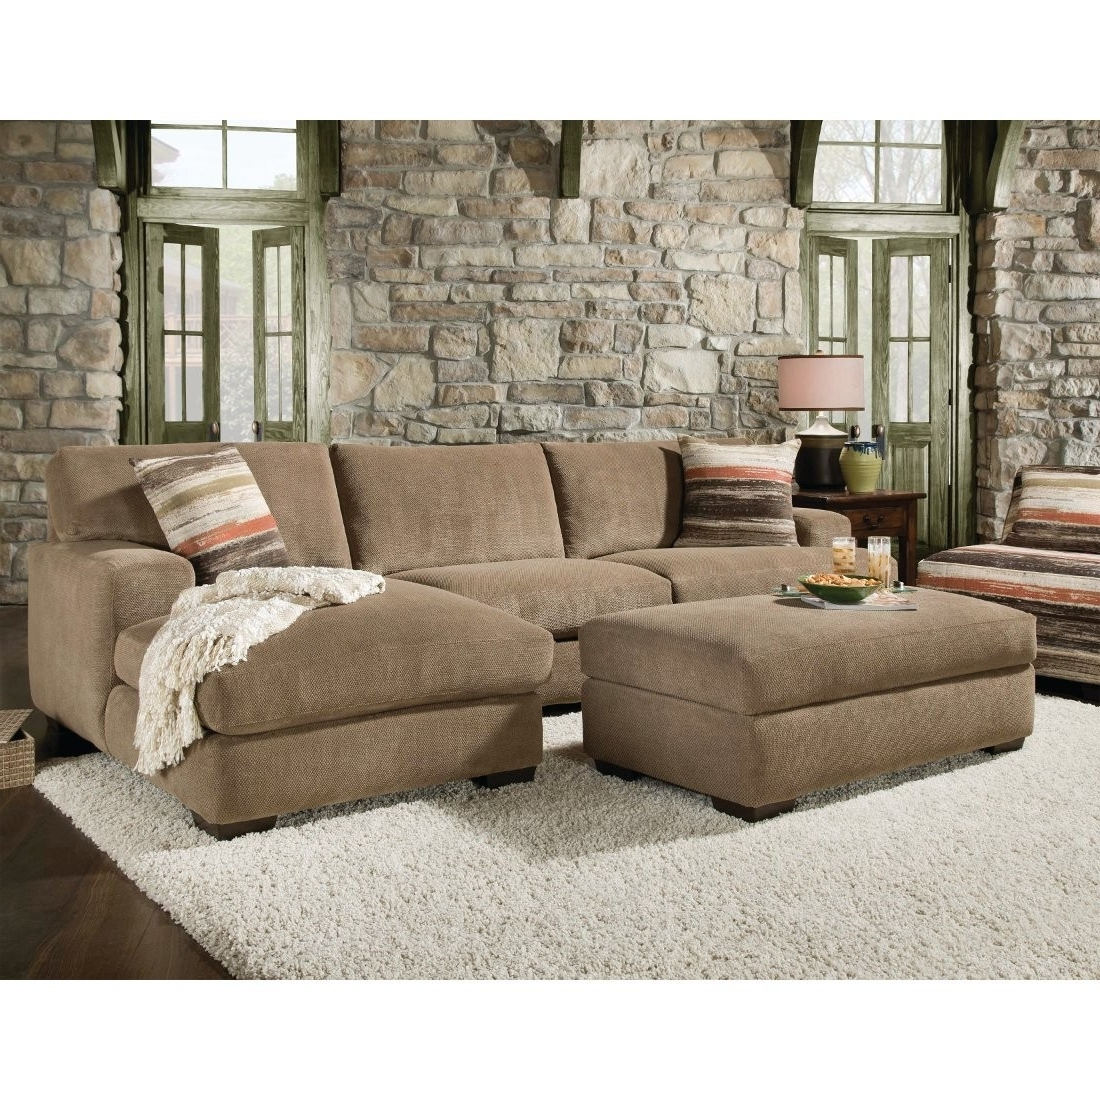 Sectionals With Chaise Lounge In Recent Beautiful Sectional Sofa With Chaise And Ottoman Pictures (View 8 of 15)